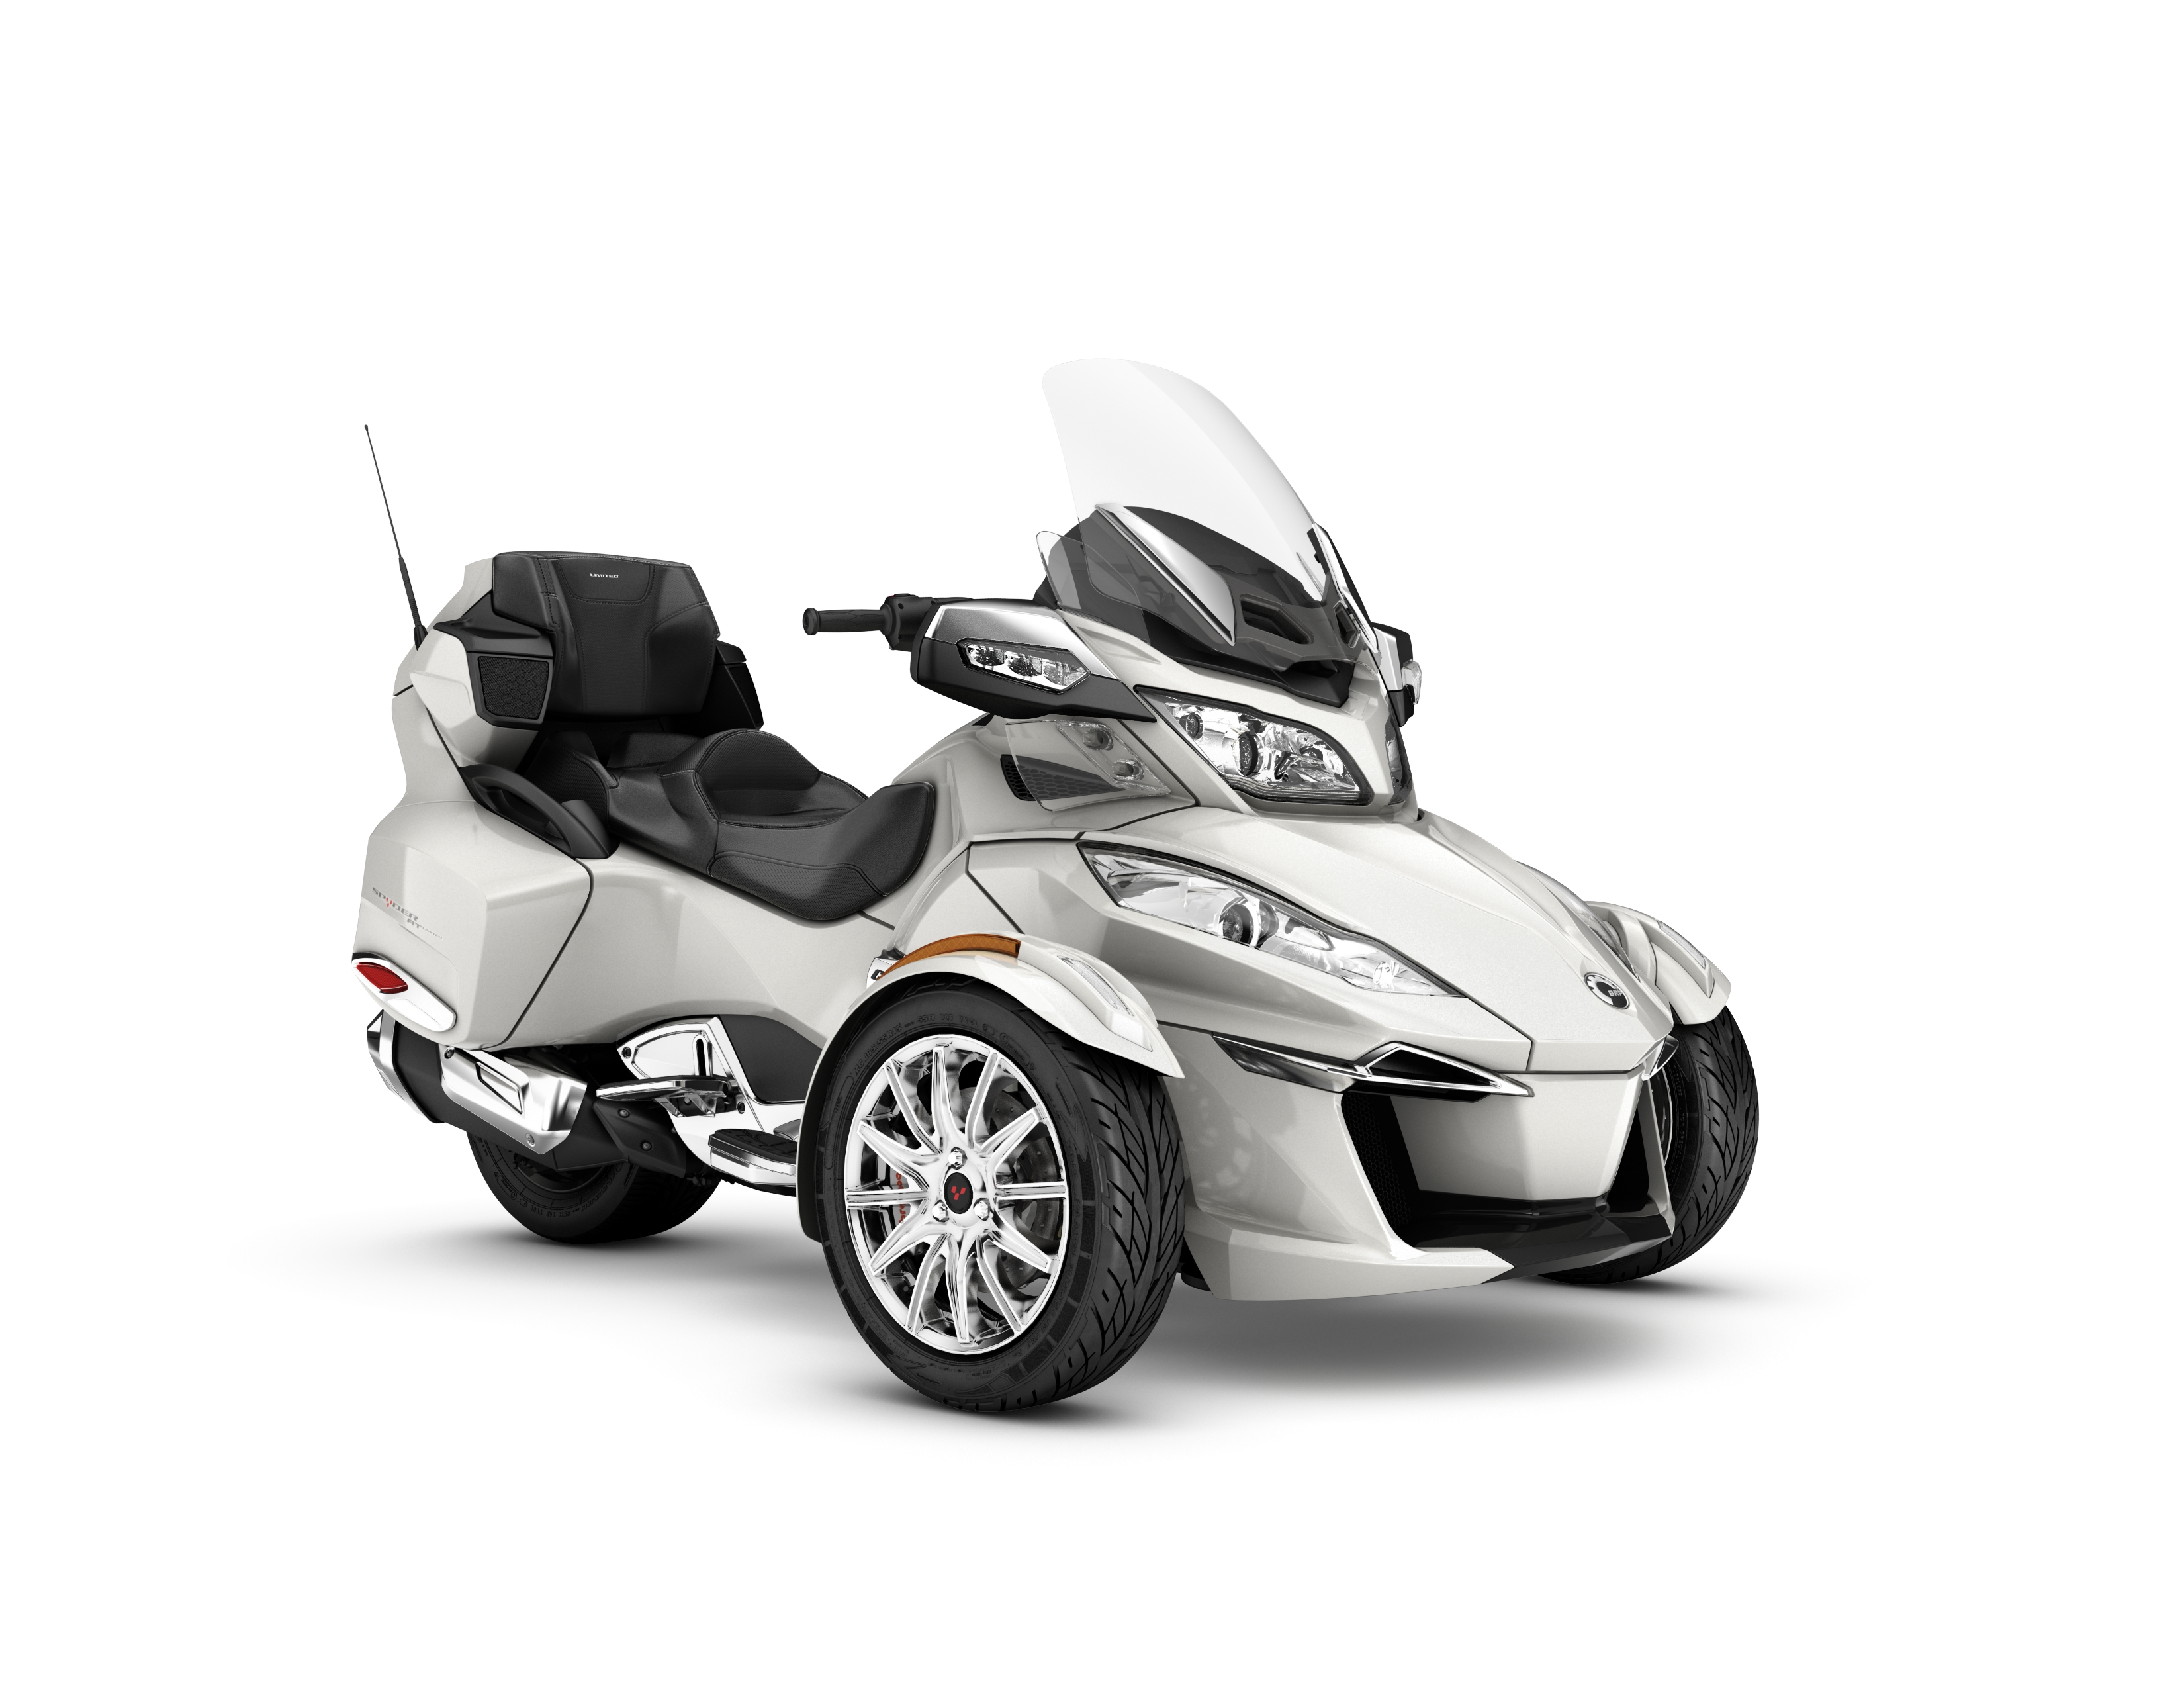 2017 Spyder RT Limited Pearl White_3-4 front.jpg